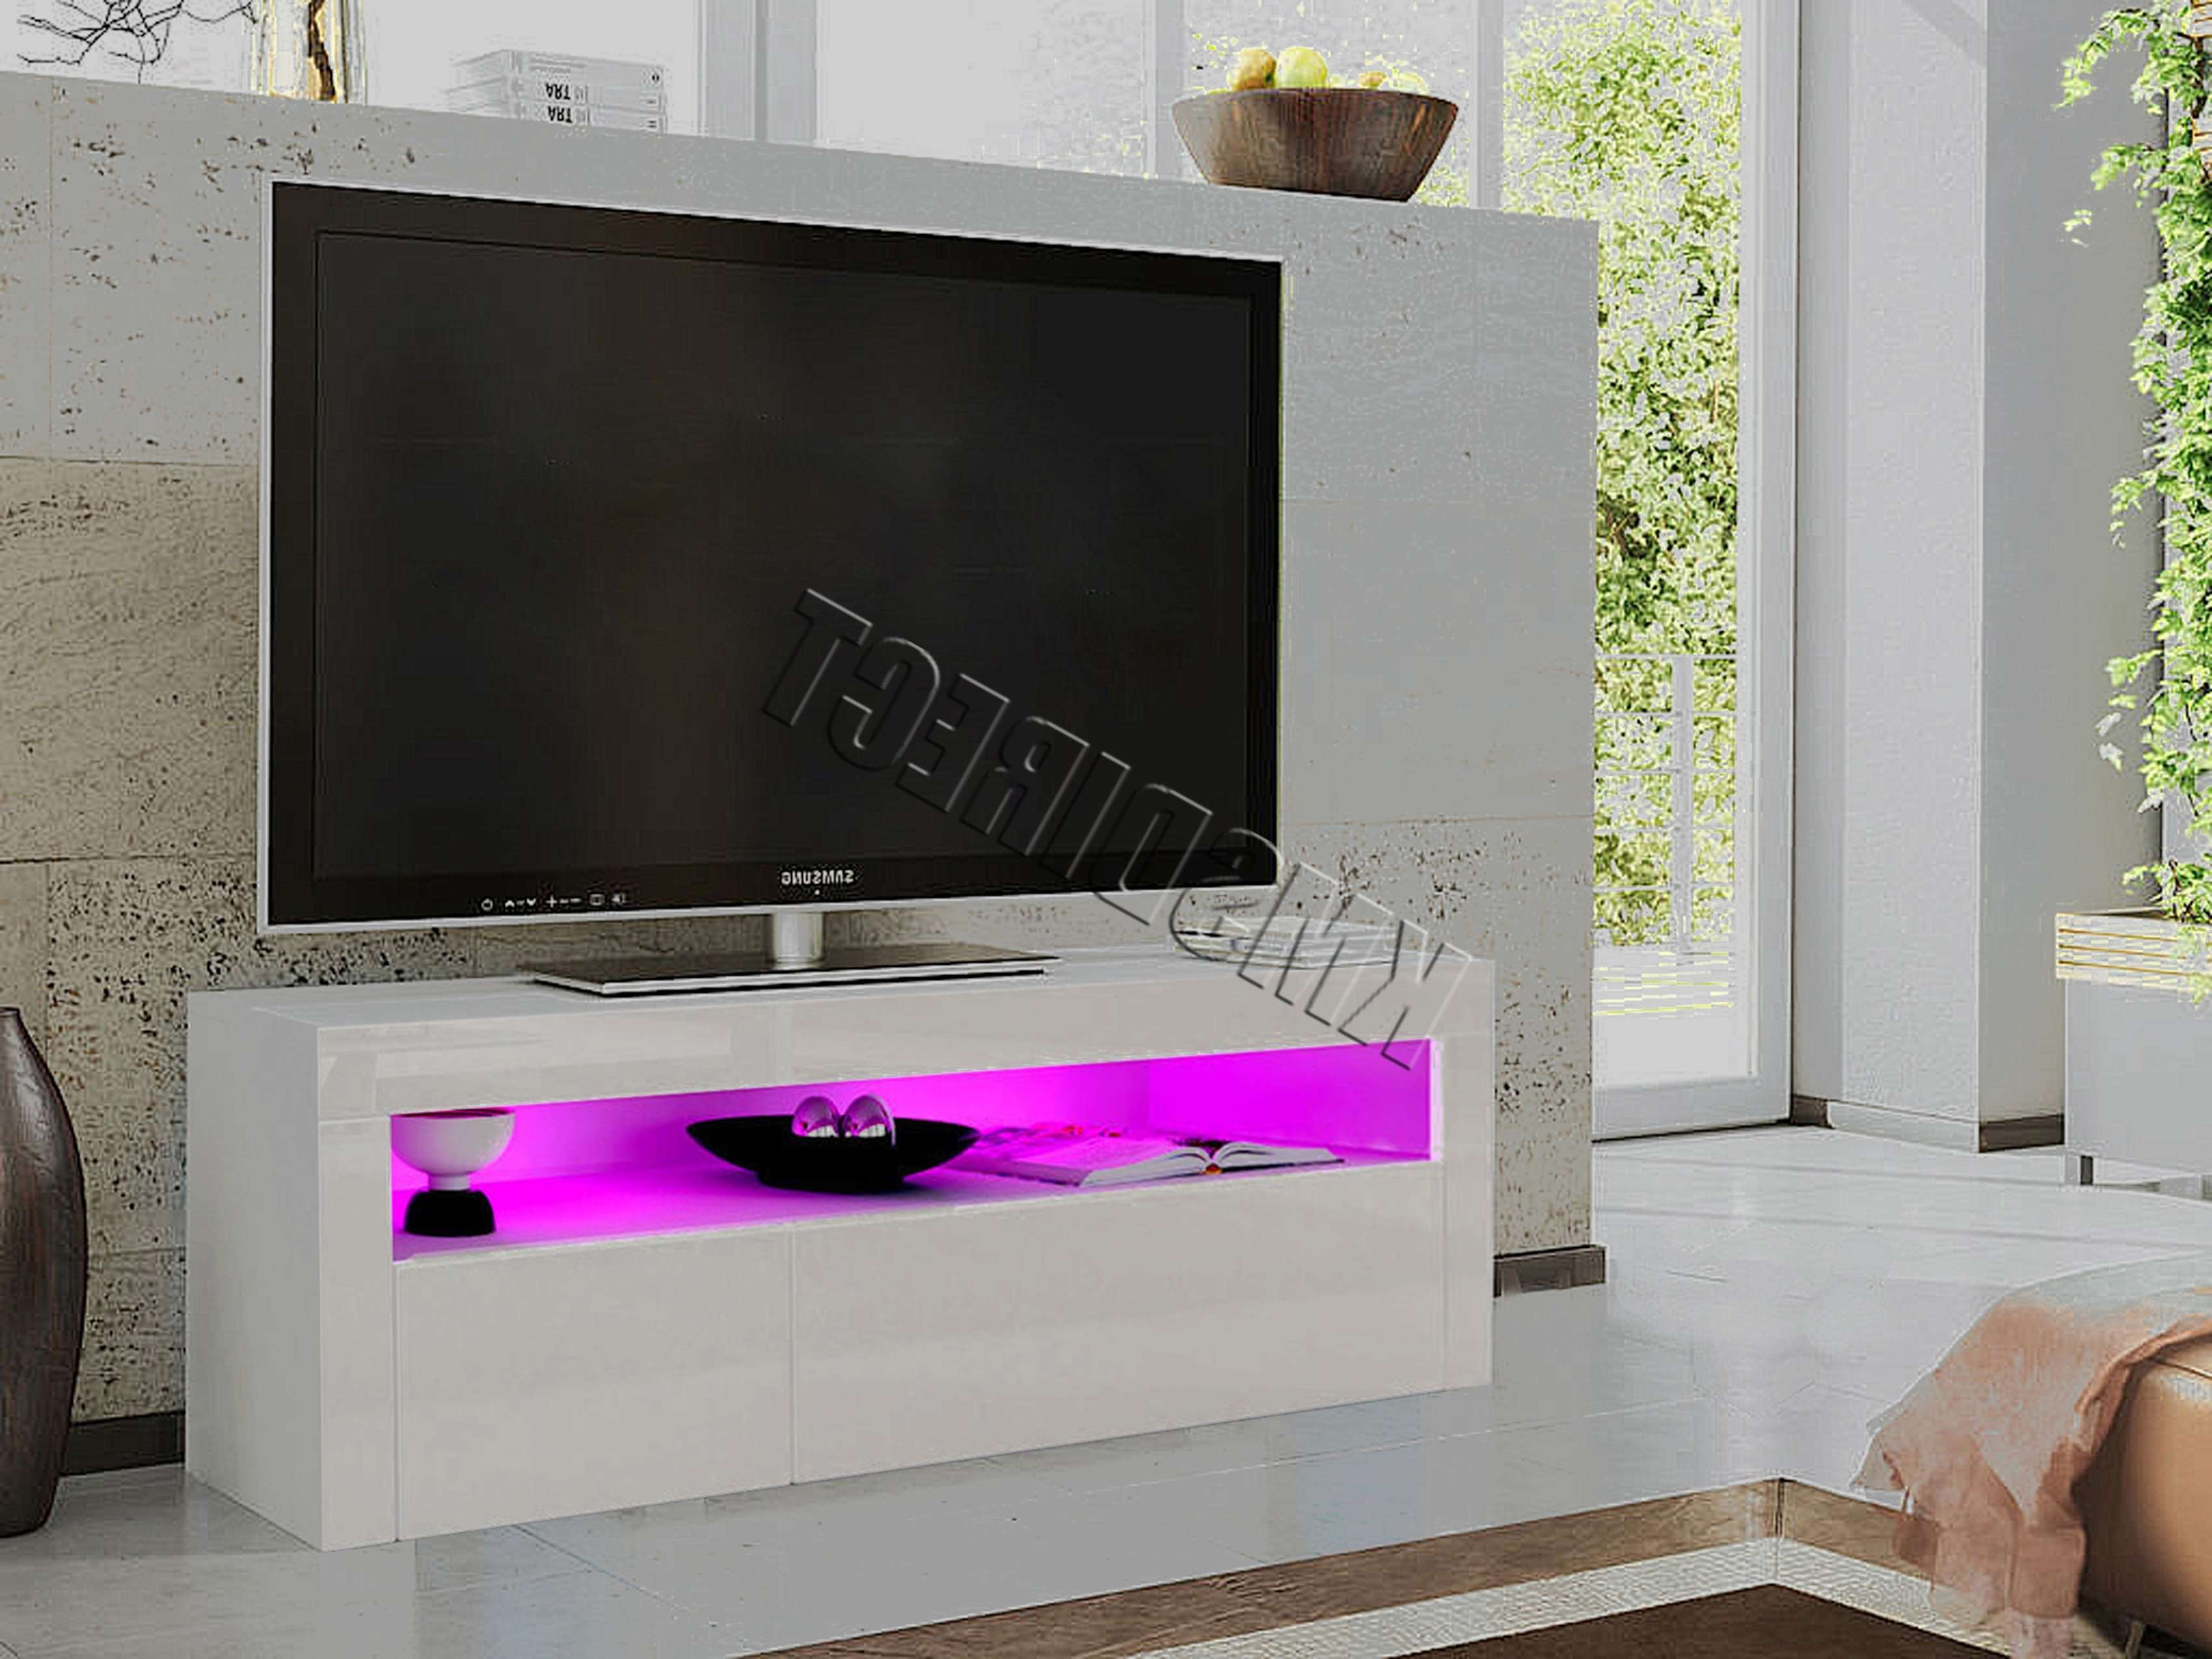 Foxhunter Modern High Gloss Matt Tv Cabinet Unit Stand White Rgb For Red Gloss Tv Cabinets (View 1 of 20)